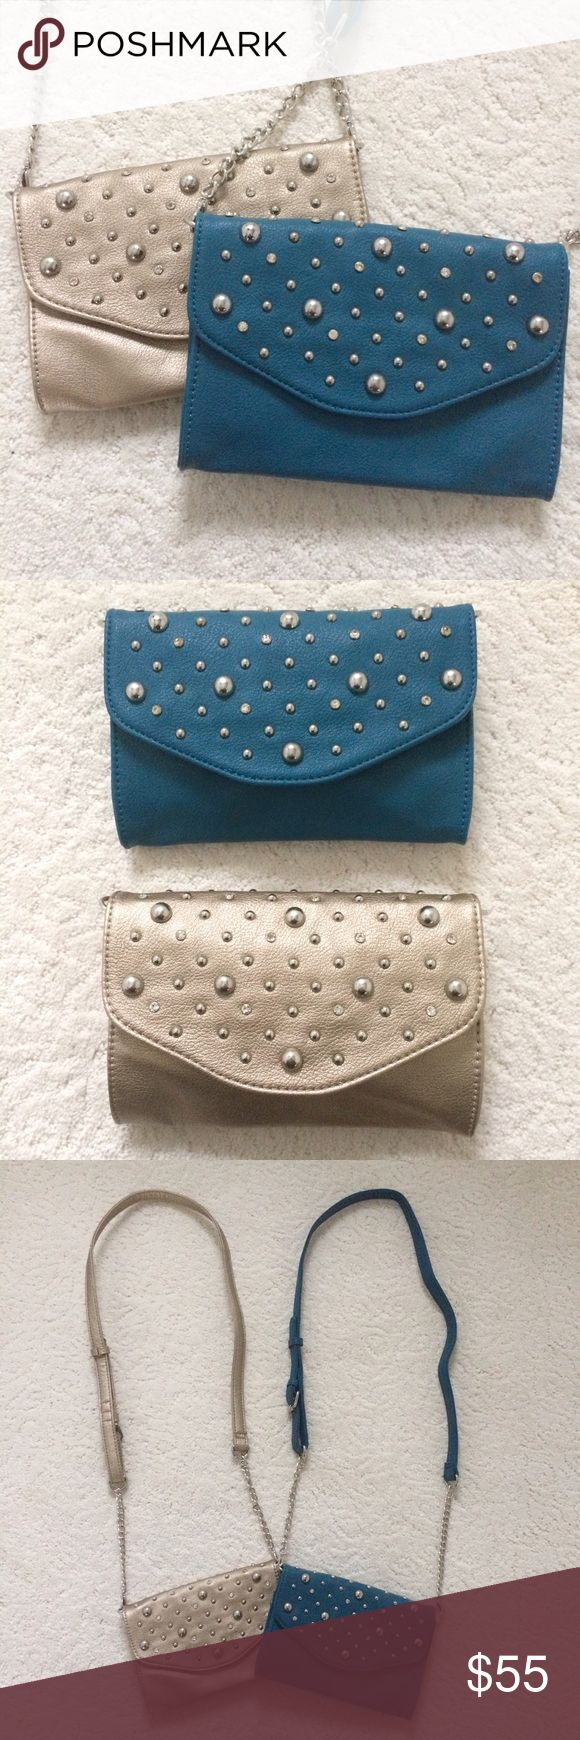 2 NWOT Clutch/Crossbody 2 Grace Adele Britt Clutches. Never used. I purchased the adjustable crossbody chain straps to go with them. They're big enough for phone, ID, lipstick, keys, and $. Beautifully made. Colors are Ocean and Metallic. Retail $40 each, straps $15 each. Grace Adele Bags Clutches & Wristlets